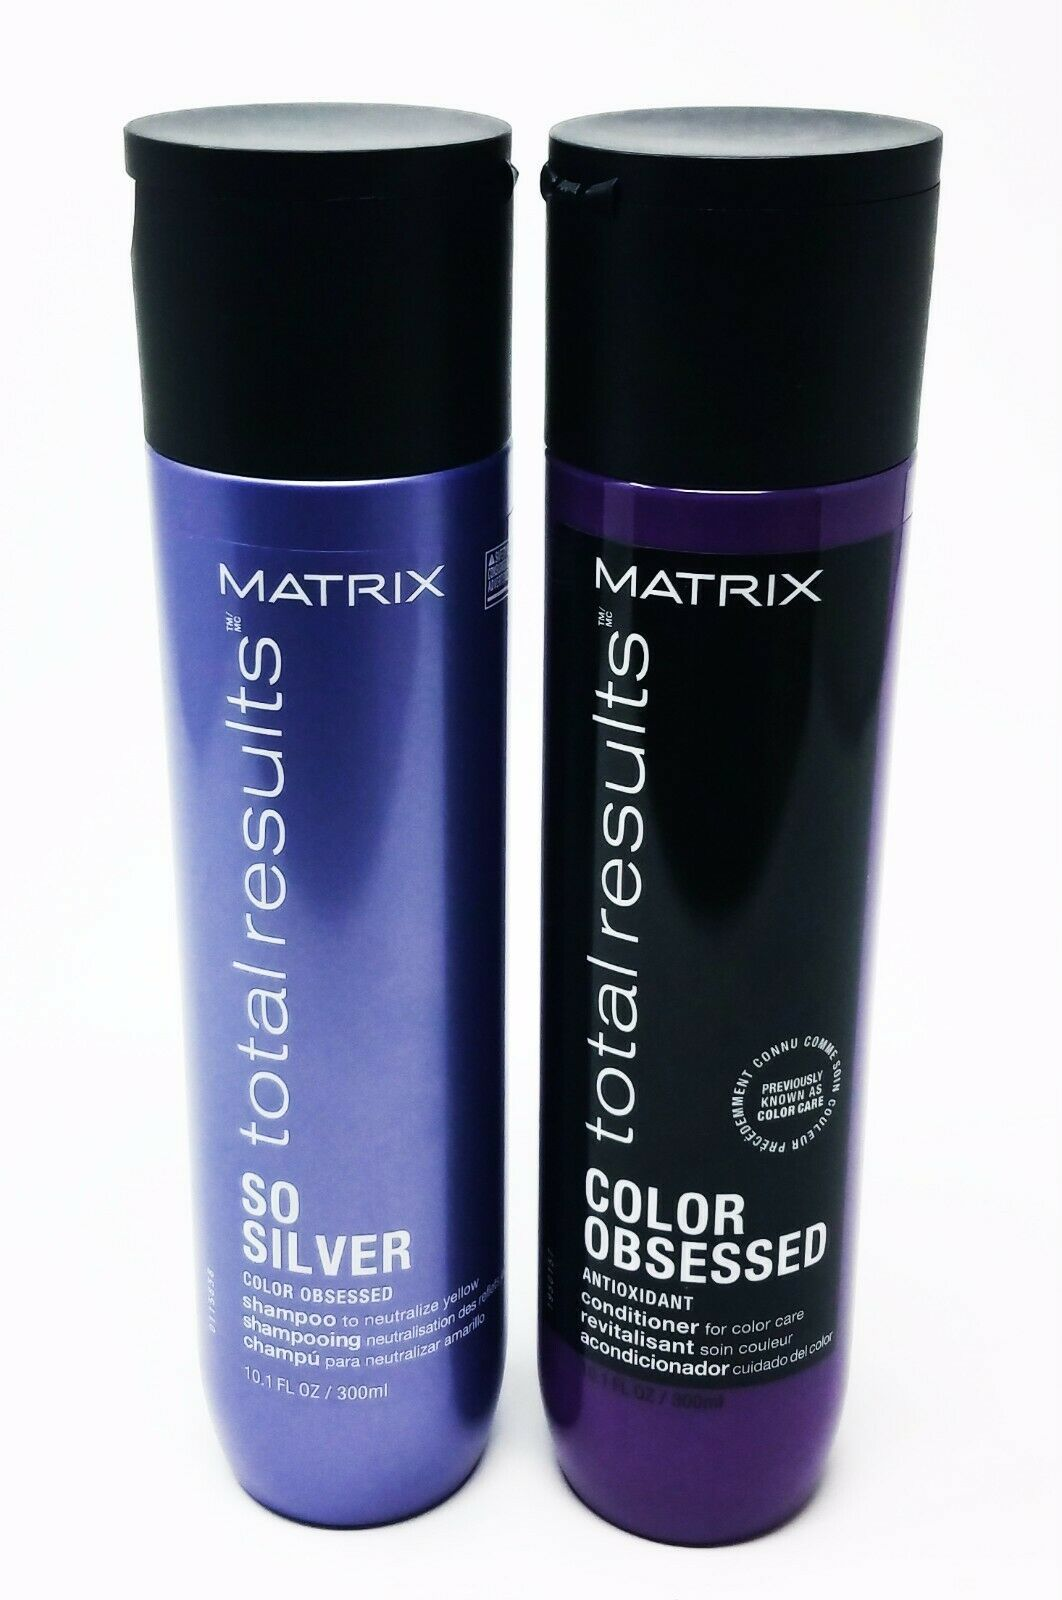 Primary image for Matrix Total Results Color Obsessed So Silver Shampoo and Conditioner 10.1 fl oz